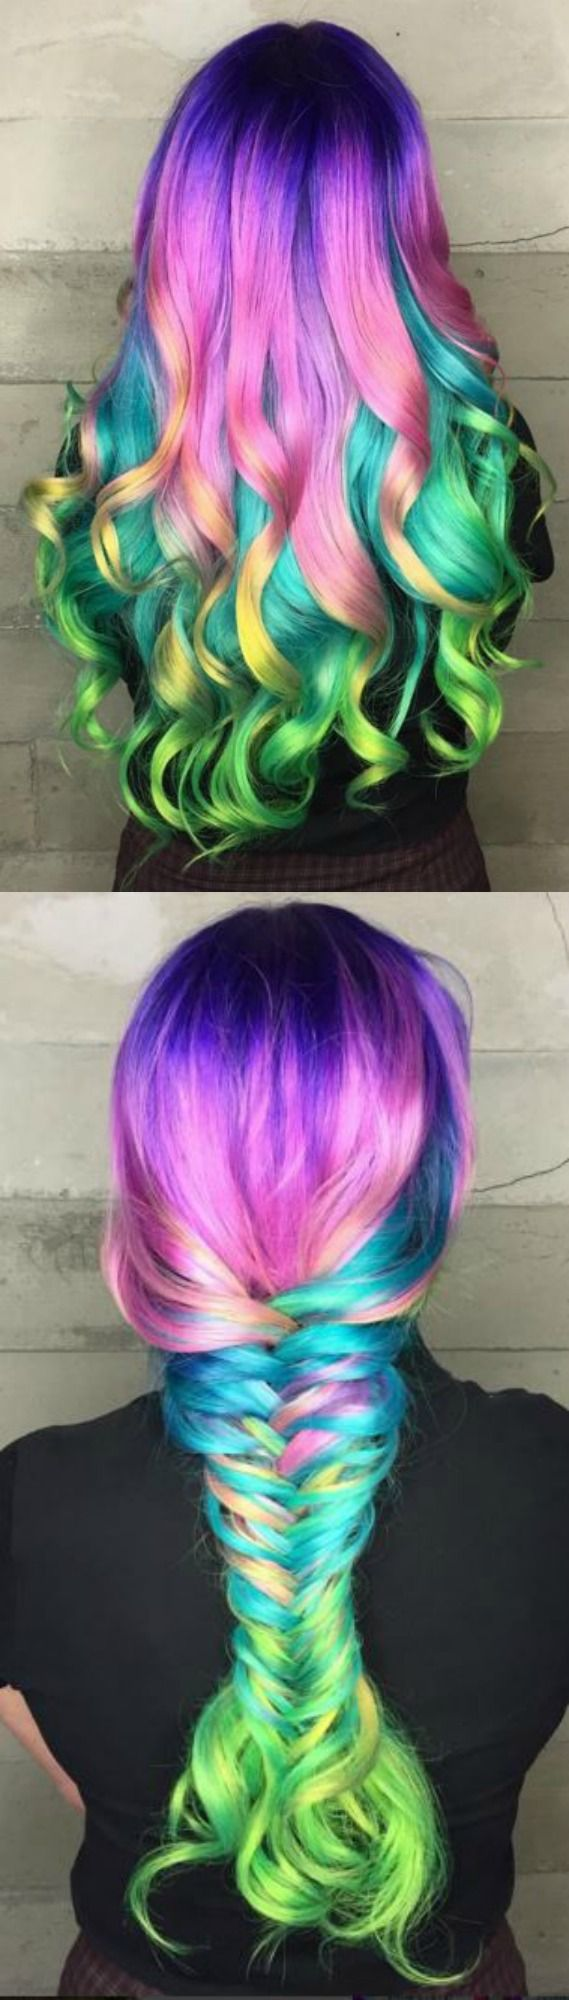 best hair images on pinterest hair colors dyed hair and braids